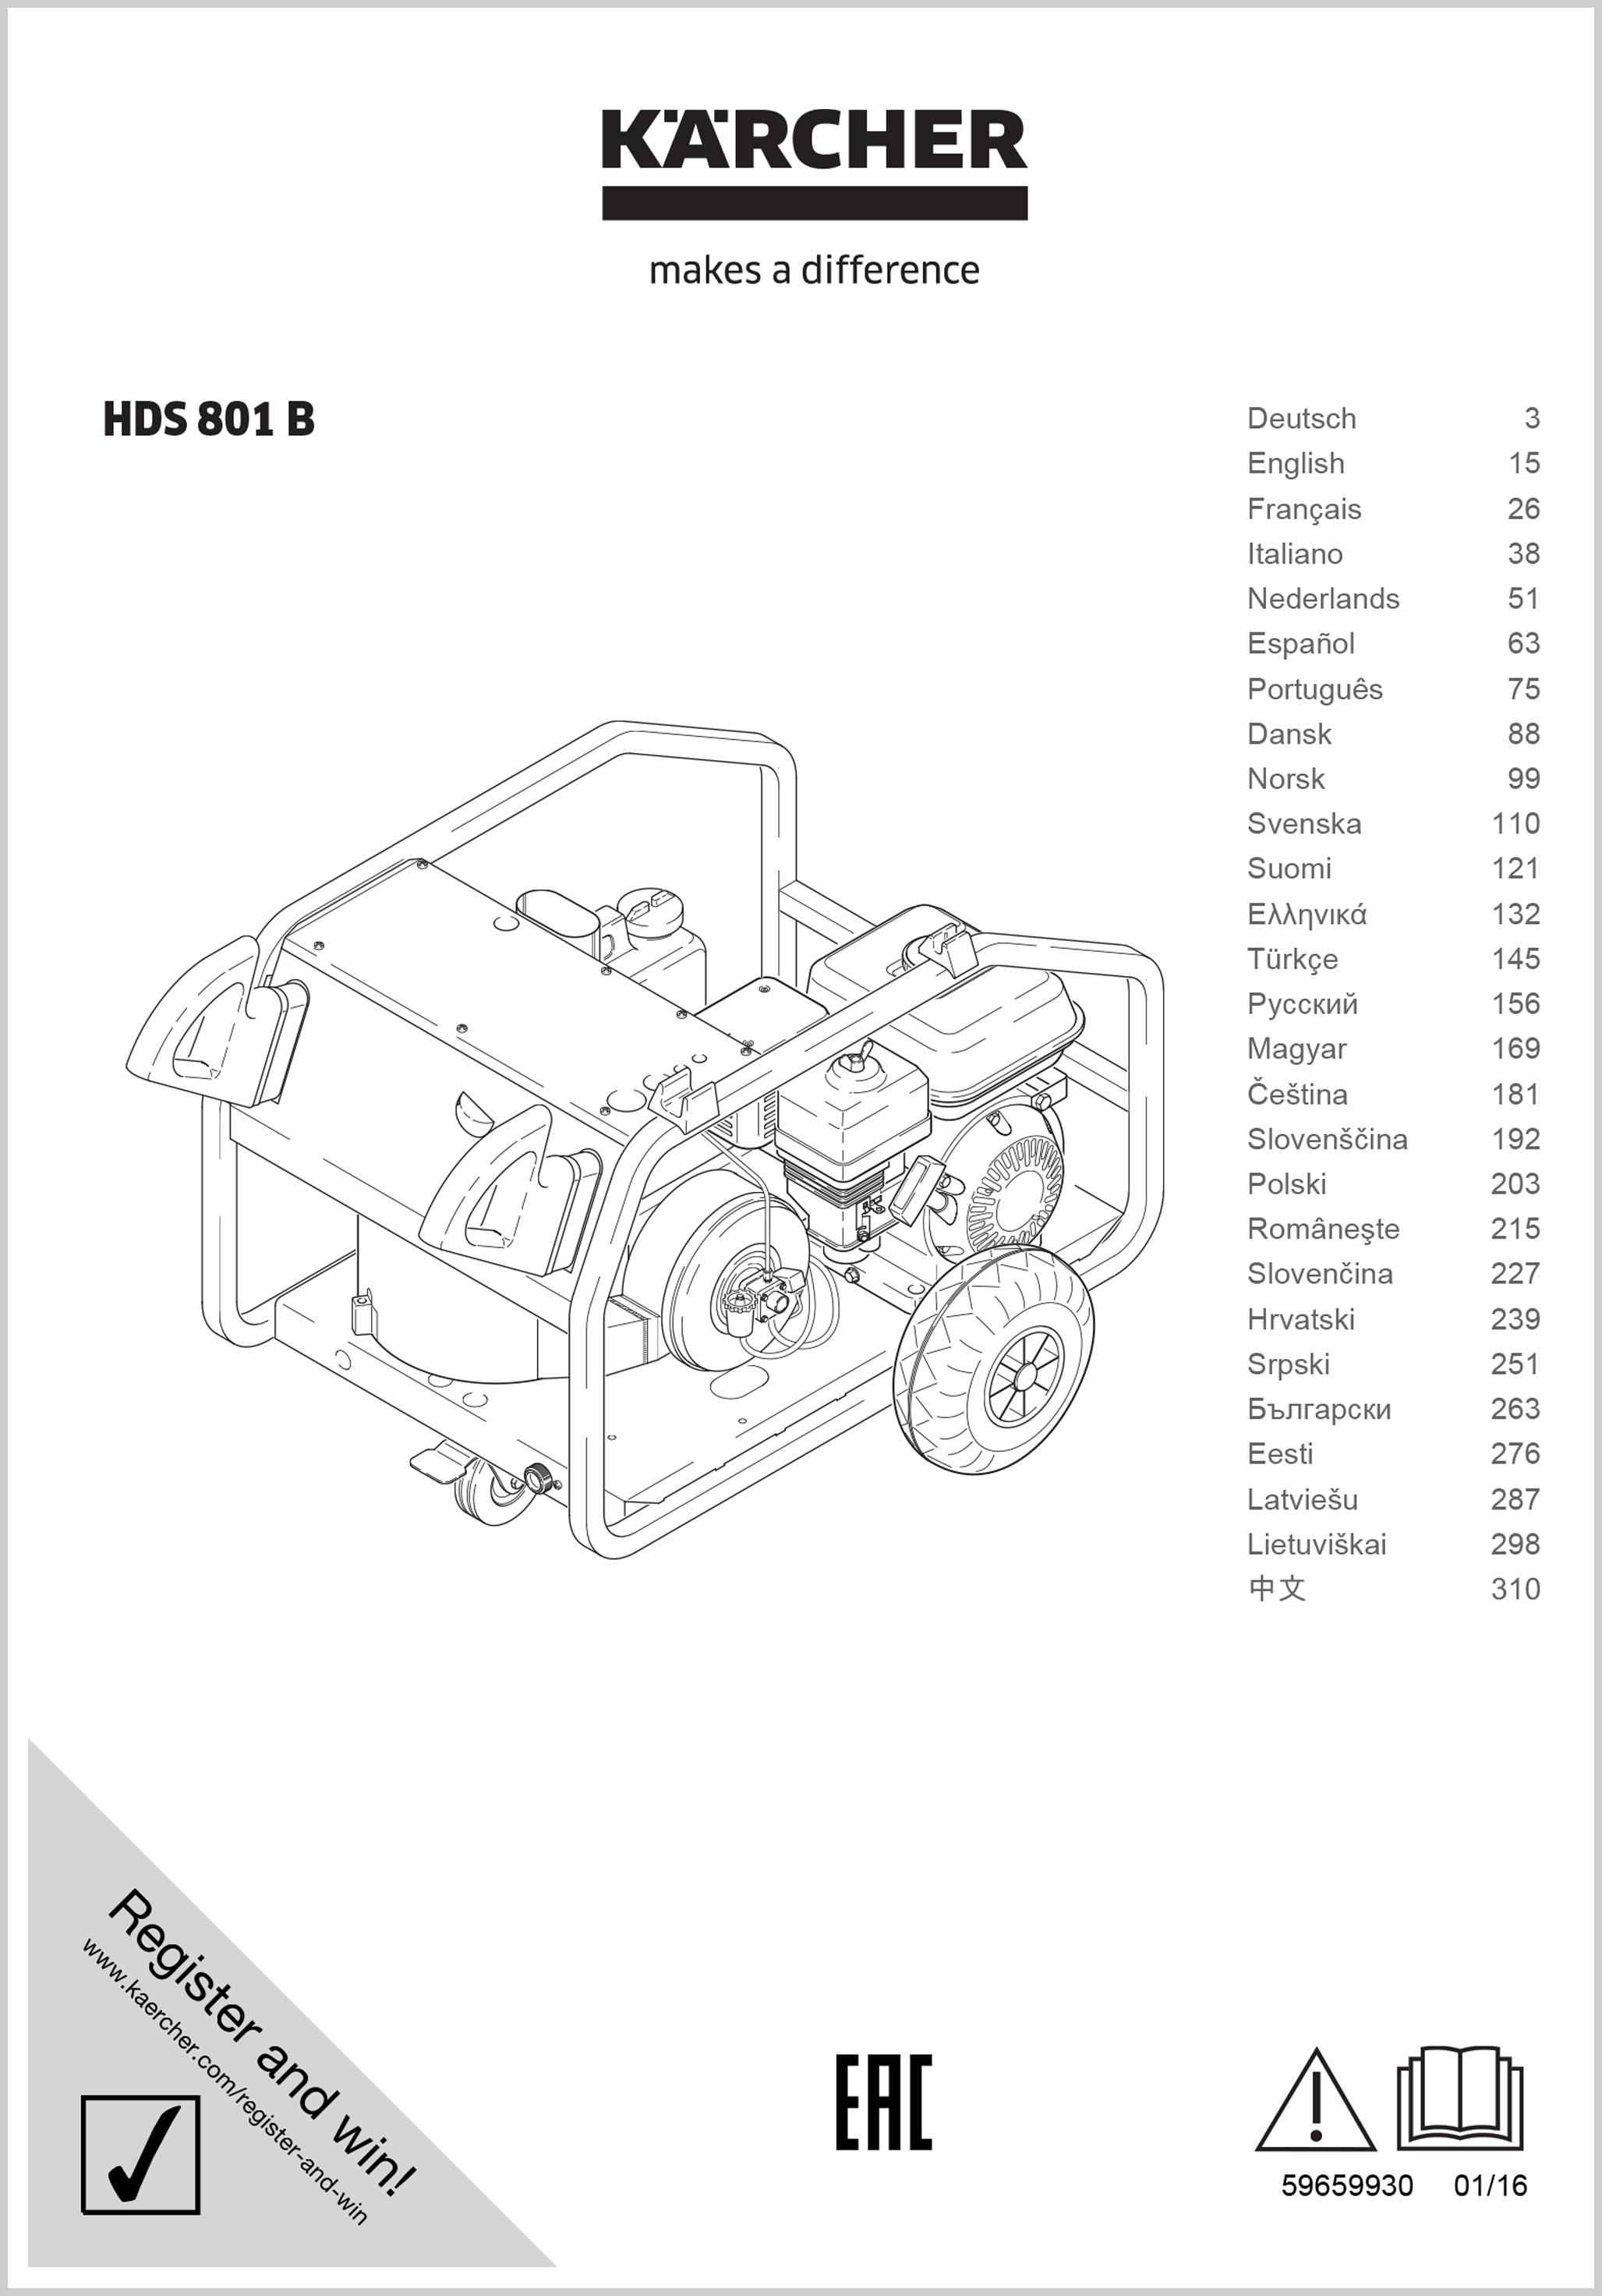 KARCHER Combustion Engine HDS 801 B Petrol Hot Water High